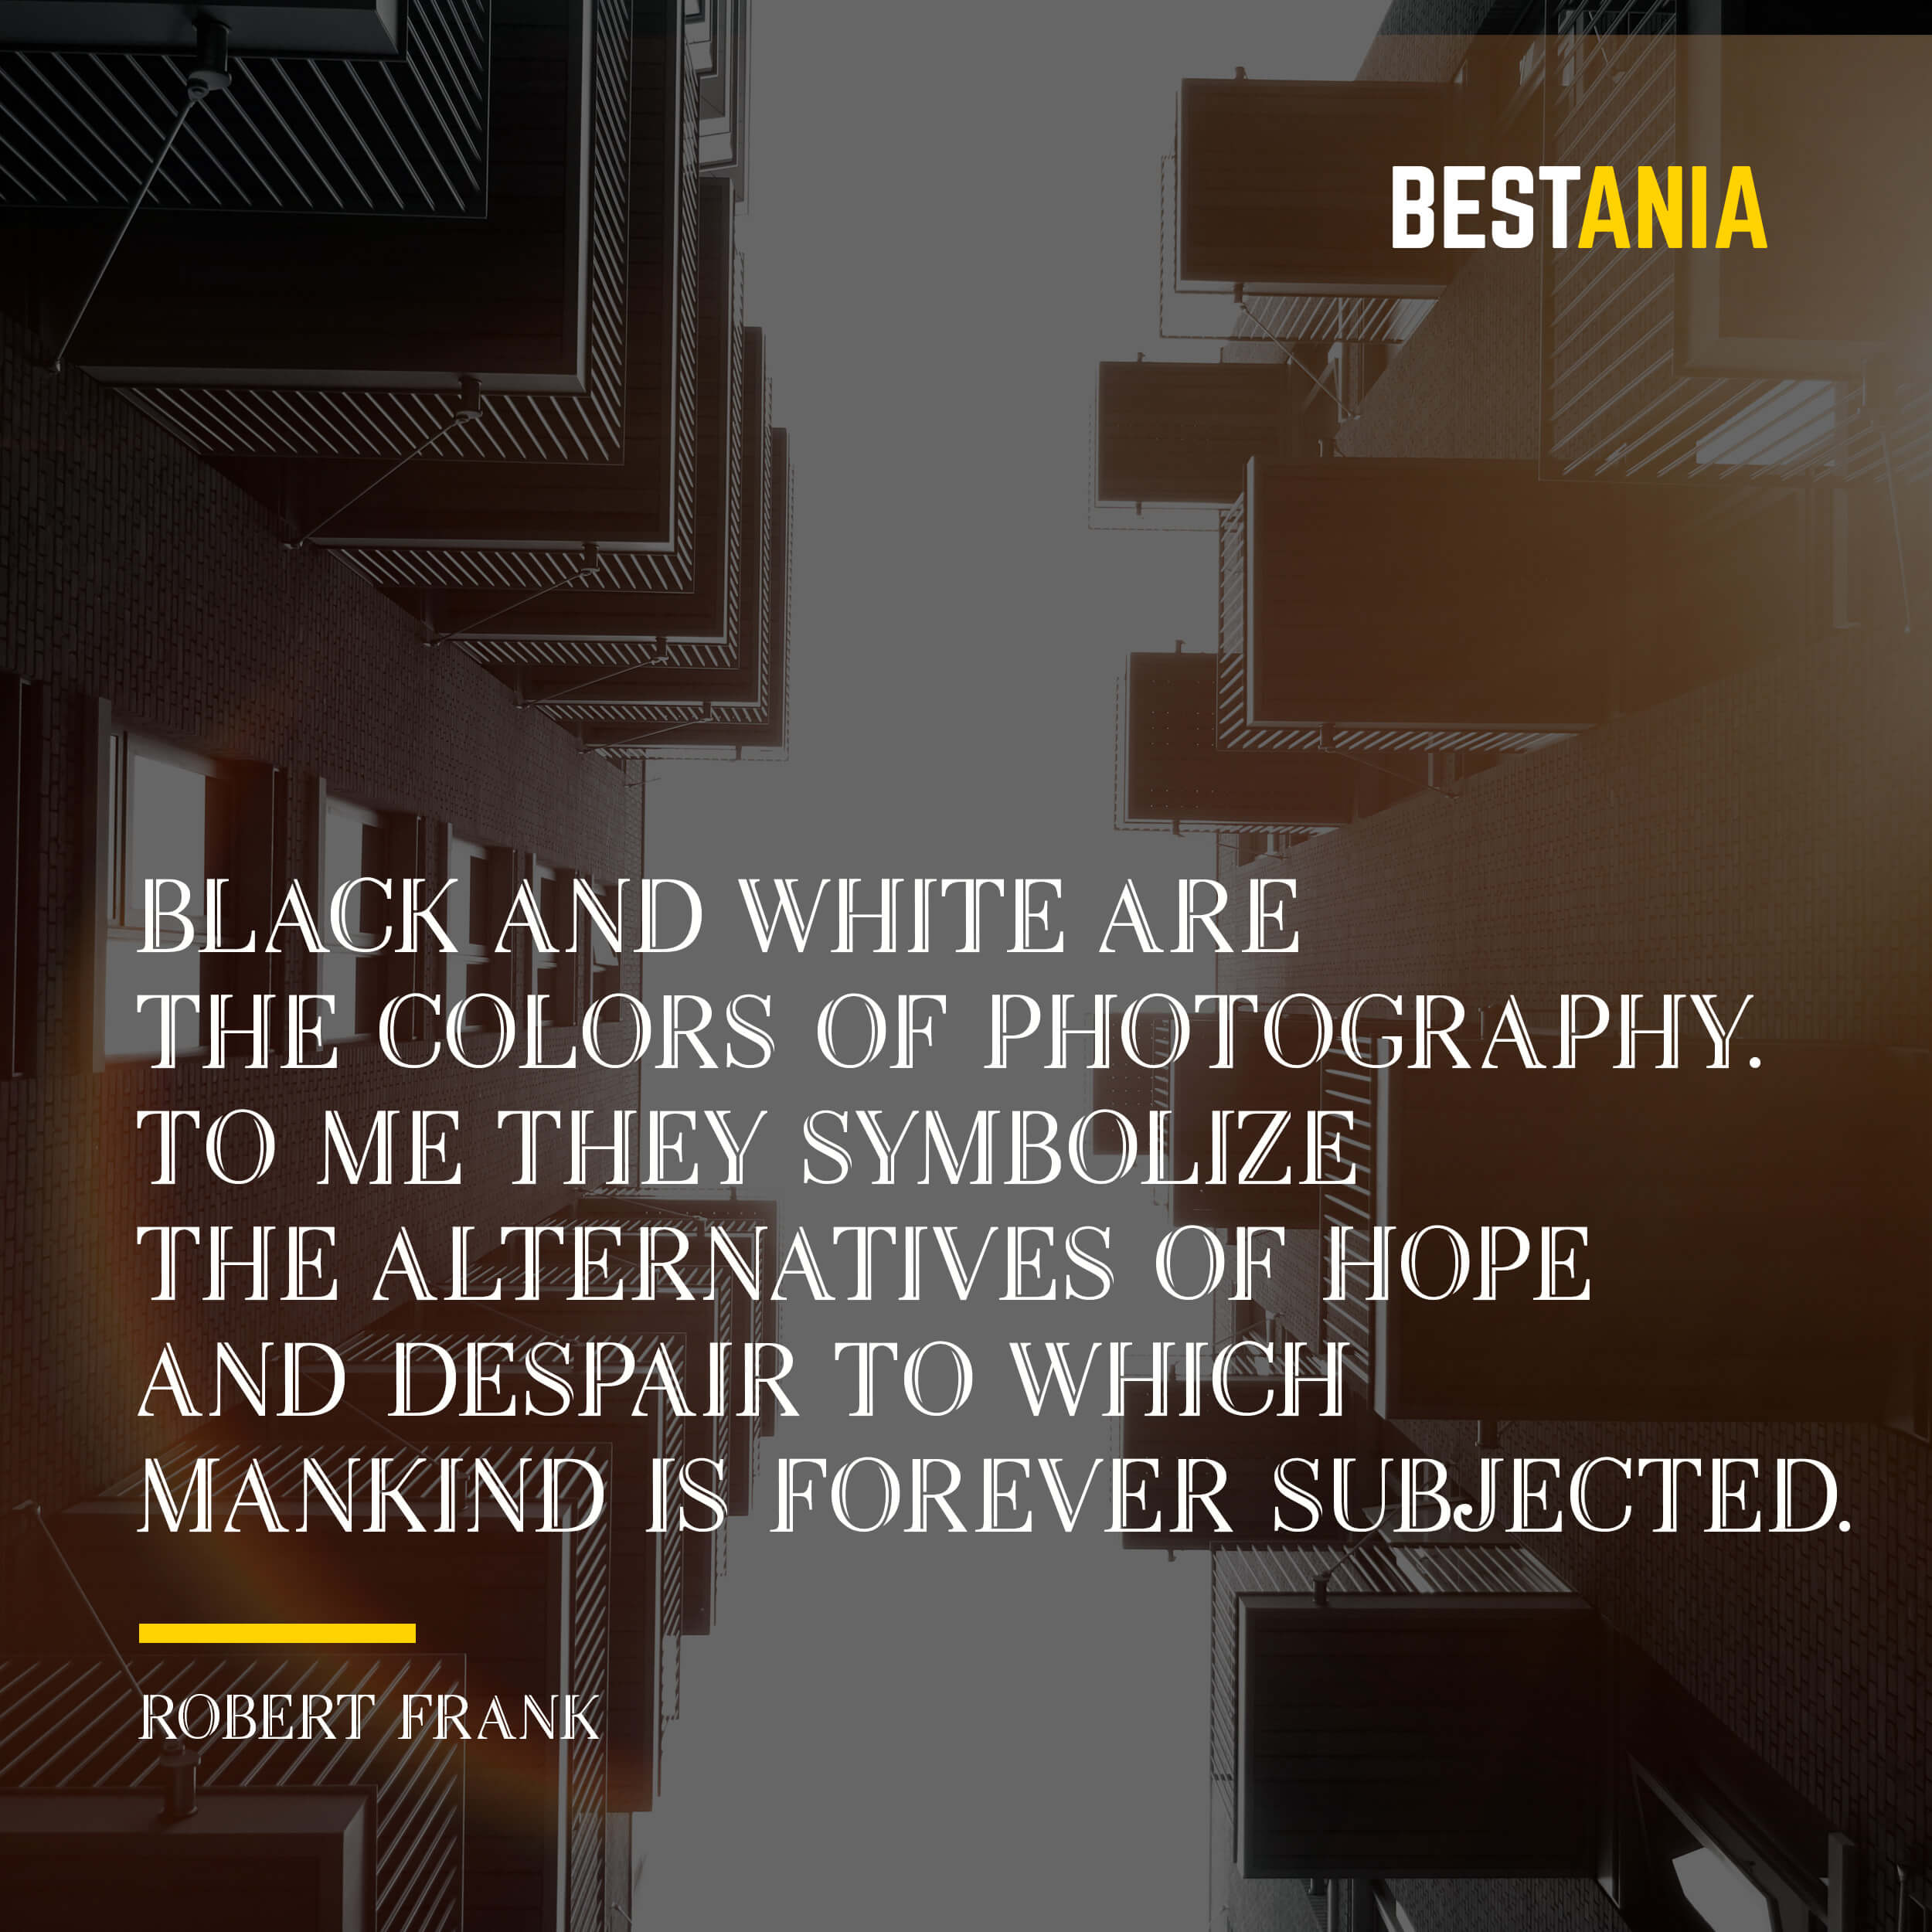 """BLACK AND WHITE ARE THE COLORS OF PHOTOGRAPHY. TO ME, THEY SYMBOLIZE THE ALTERNATIVES OF HOPE AND DESPAIR TO WHICH MANKIND IS FOREVER SUBJECTED."" ROBERT FRANK"